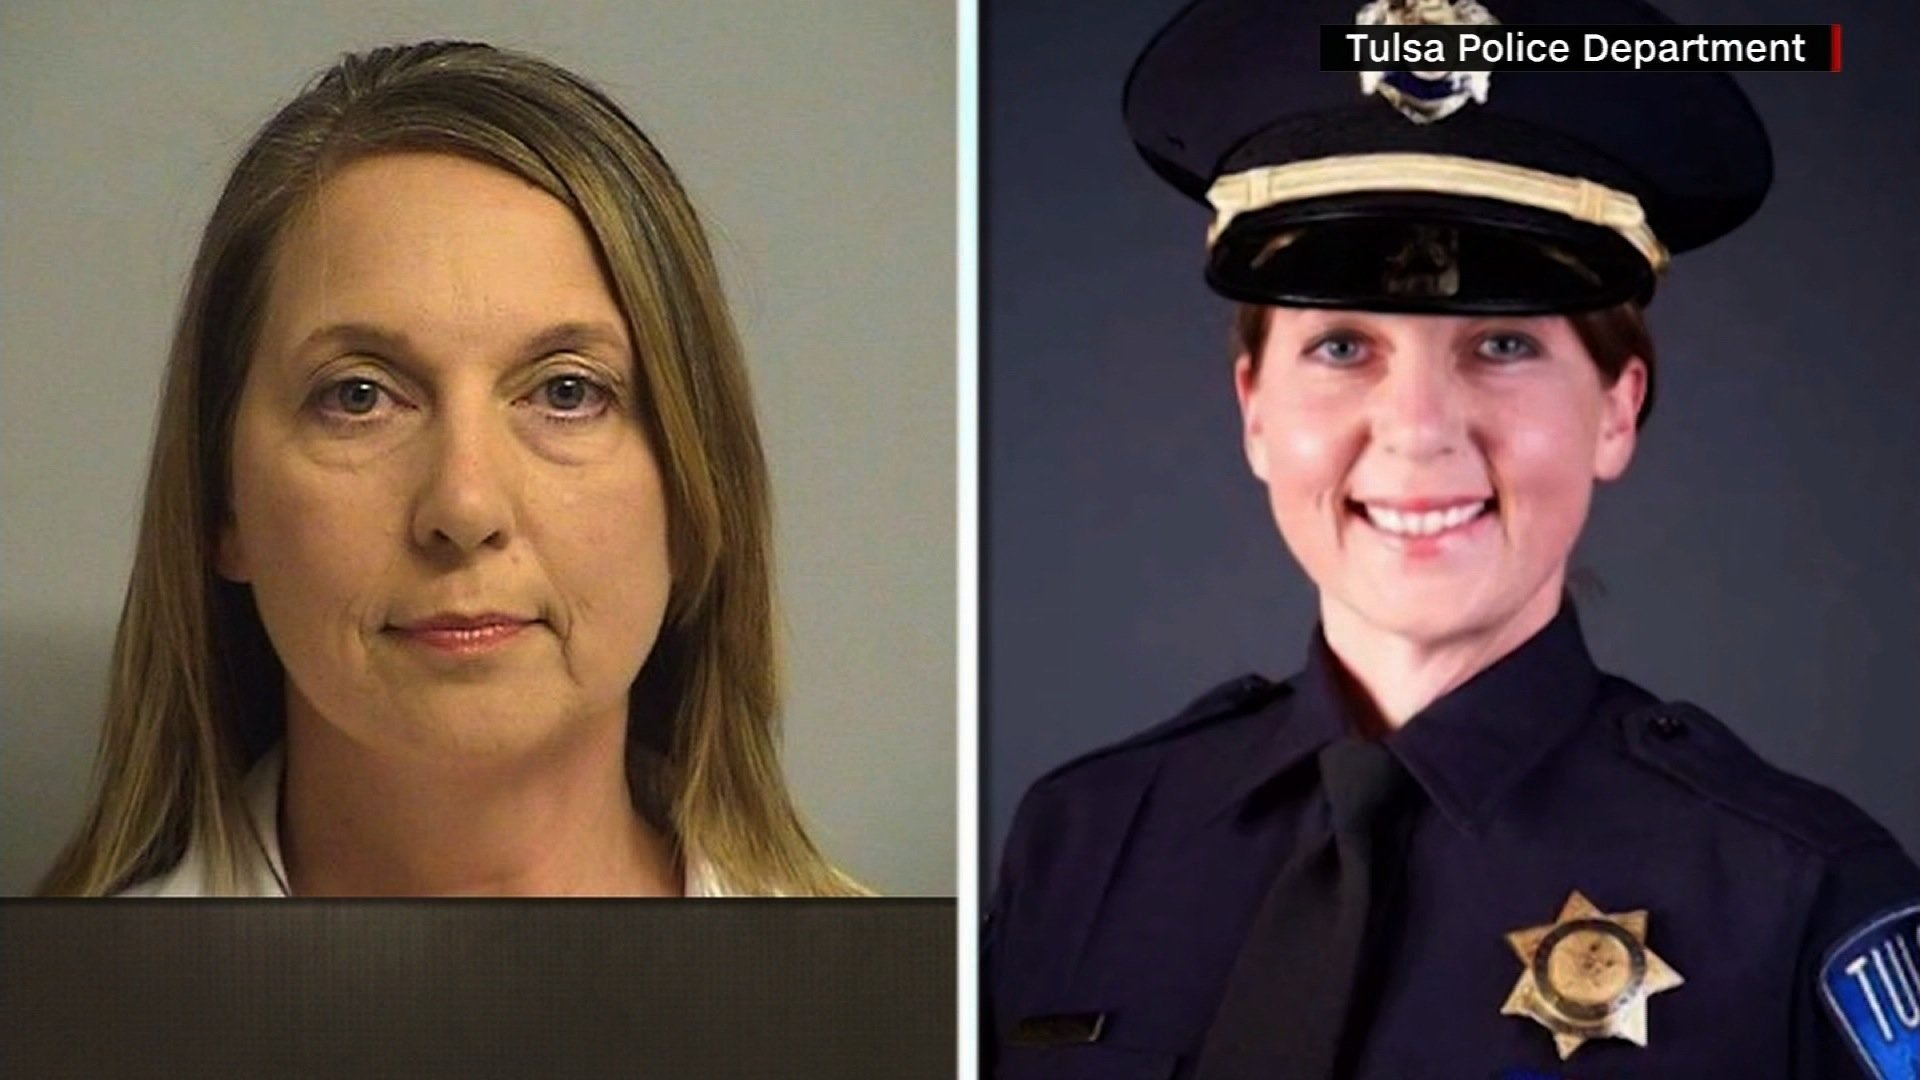 Tulsa police officer Betty Shelby resigns after acquittal